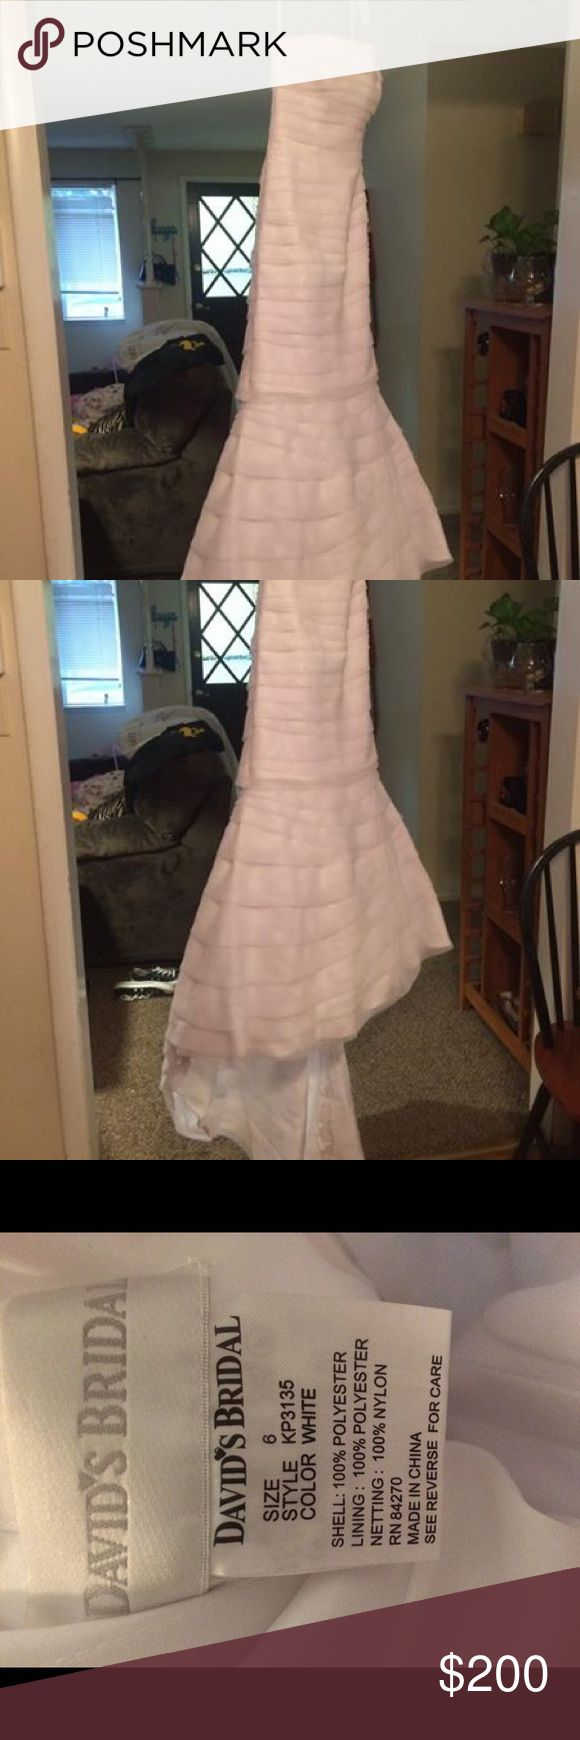 USED Sz 6 David's Bridal convertible wedding gown USED size 6 David's Bridal convertible wedding gown. Worn for 8 hours. Unzips to become a reception dress. Sash included. Needs to be cleaned. David's Bridal Dresses Wedding